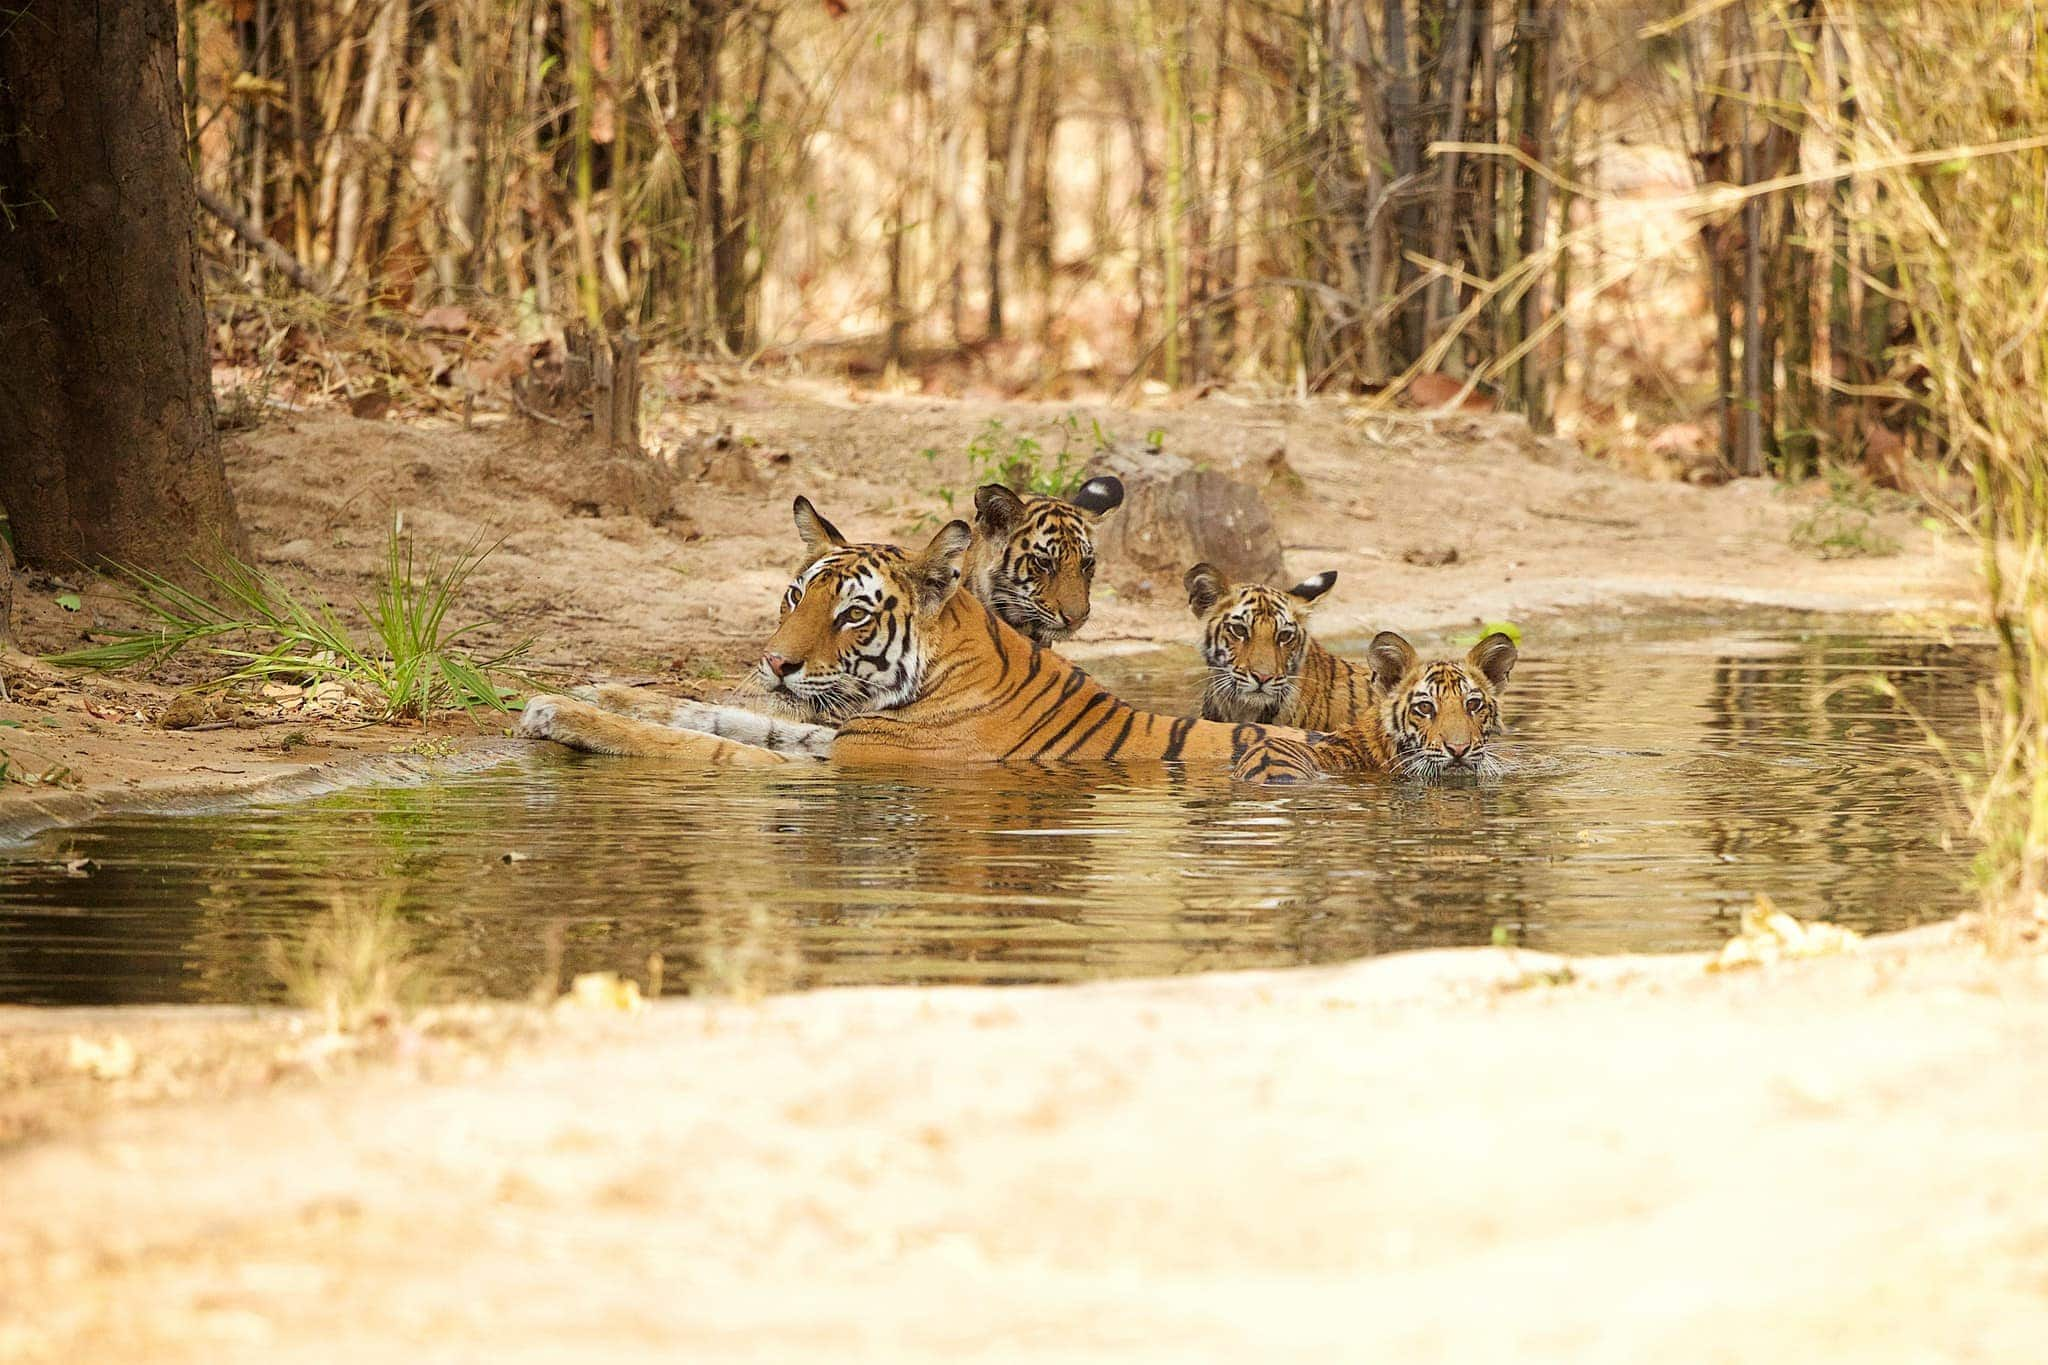 Tiger Family As Photographed During The NaturesLens Tigers Of Bandhavgarh Photography Holiday